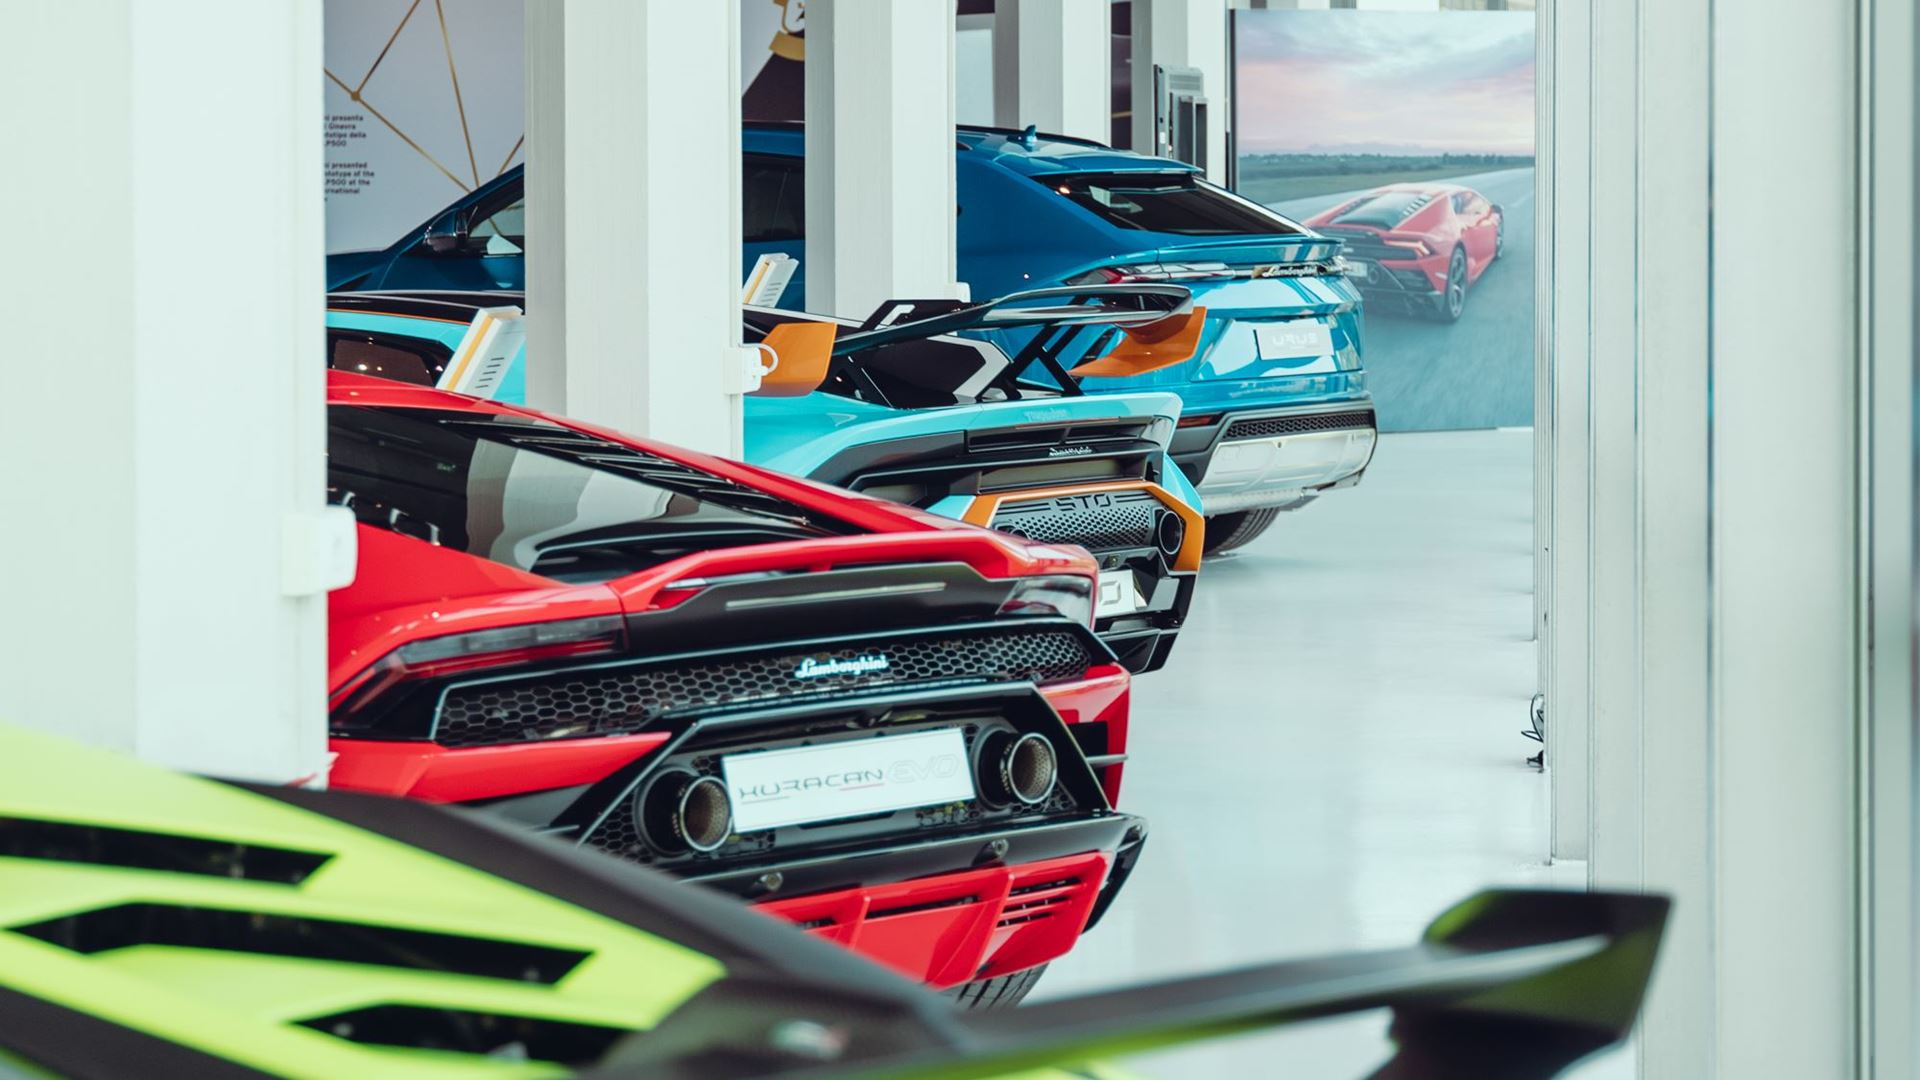 Automobili Lamborghini: The MUDETEC reopens its doors with a new exhibition around innovation and tradition - Image 4